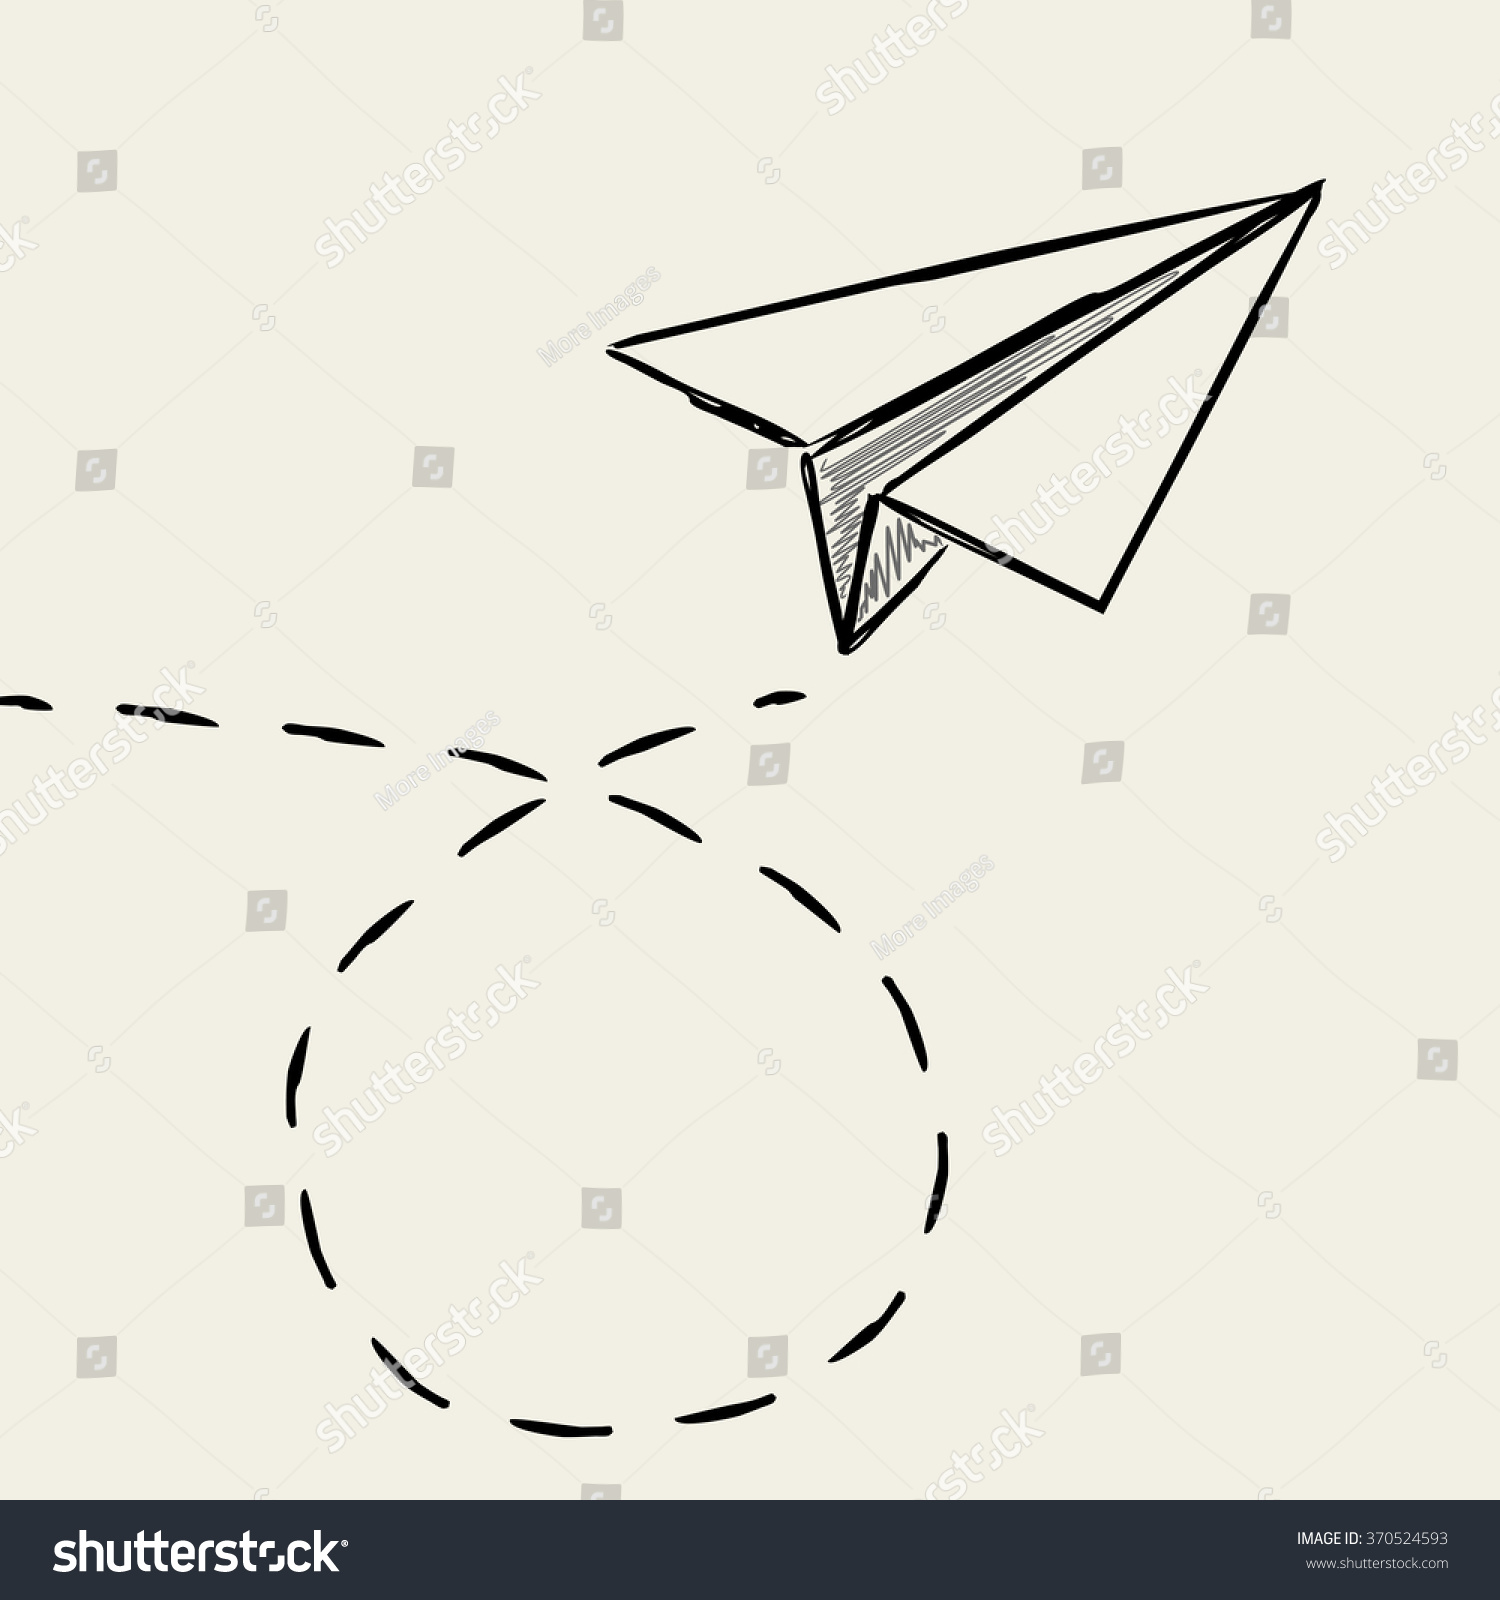 Paper Plane Drawing Dashed Trace Line Stock Vector Royalty Free